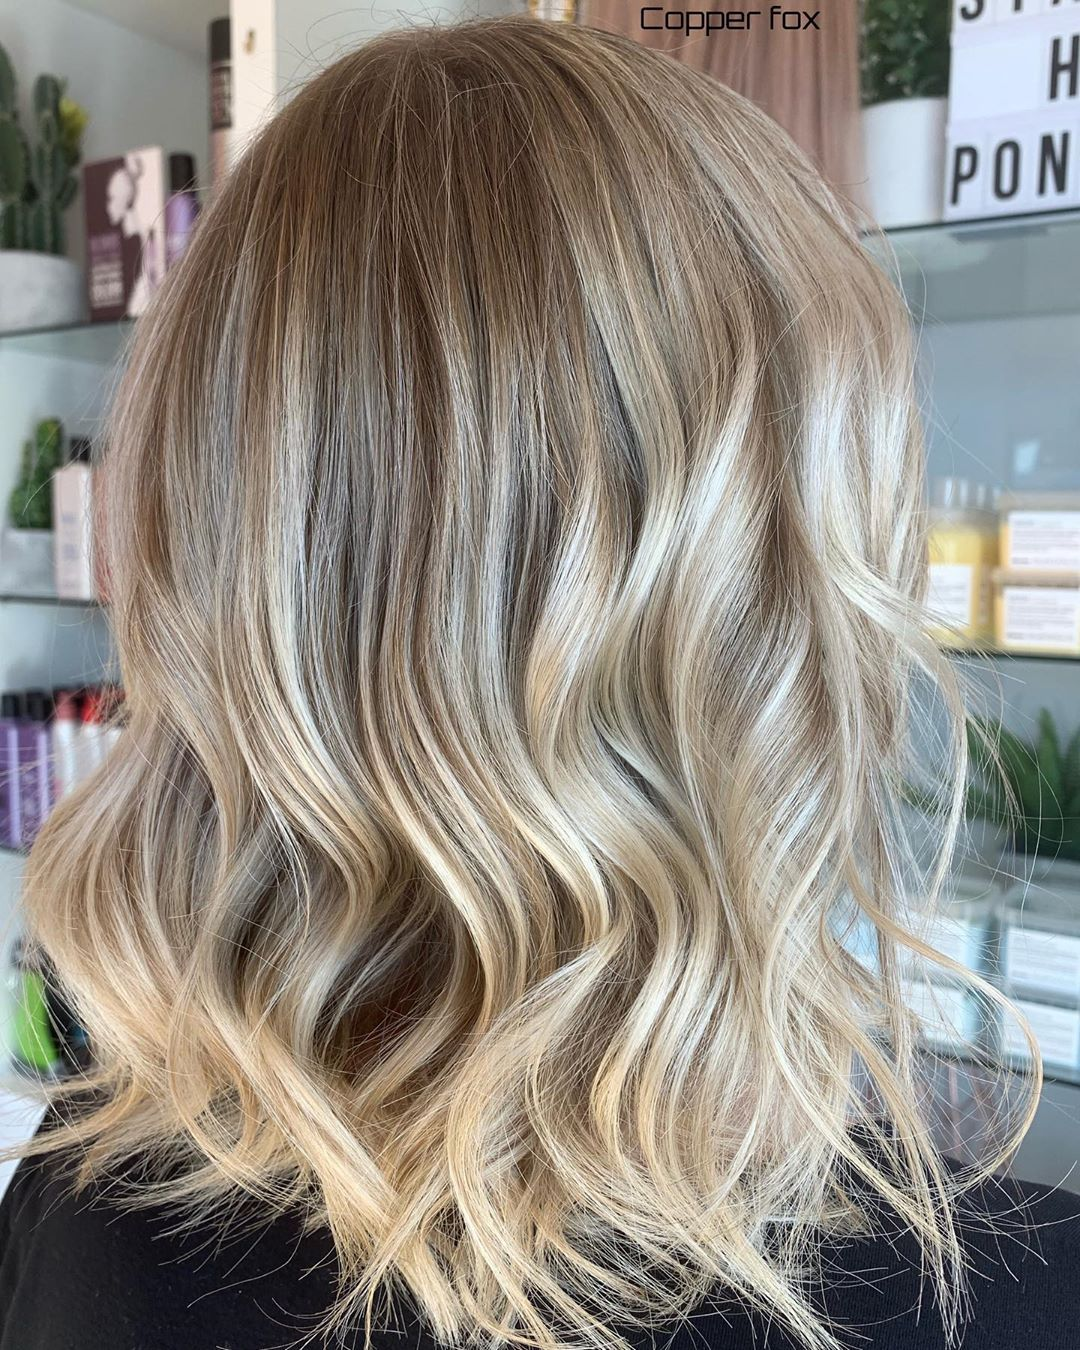 Highlights Lowlights Root Shadow By Stylist Britten Britten Is On Holidays At The Moment But She Wi Highlights And Lowlights Long Hair Styles Stylists